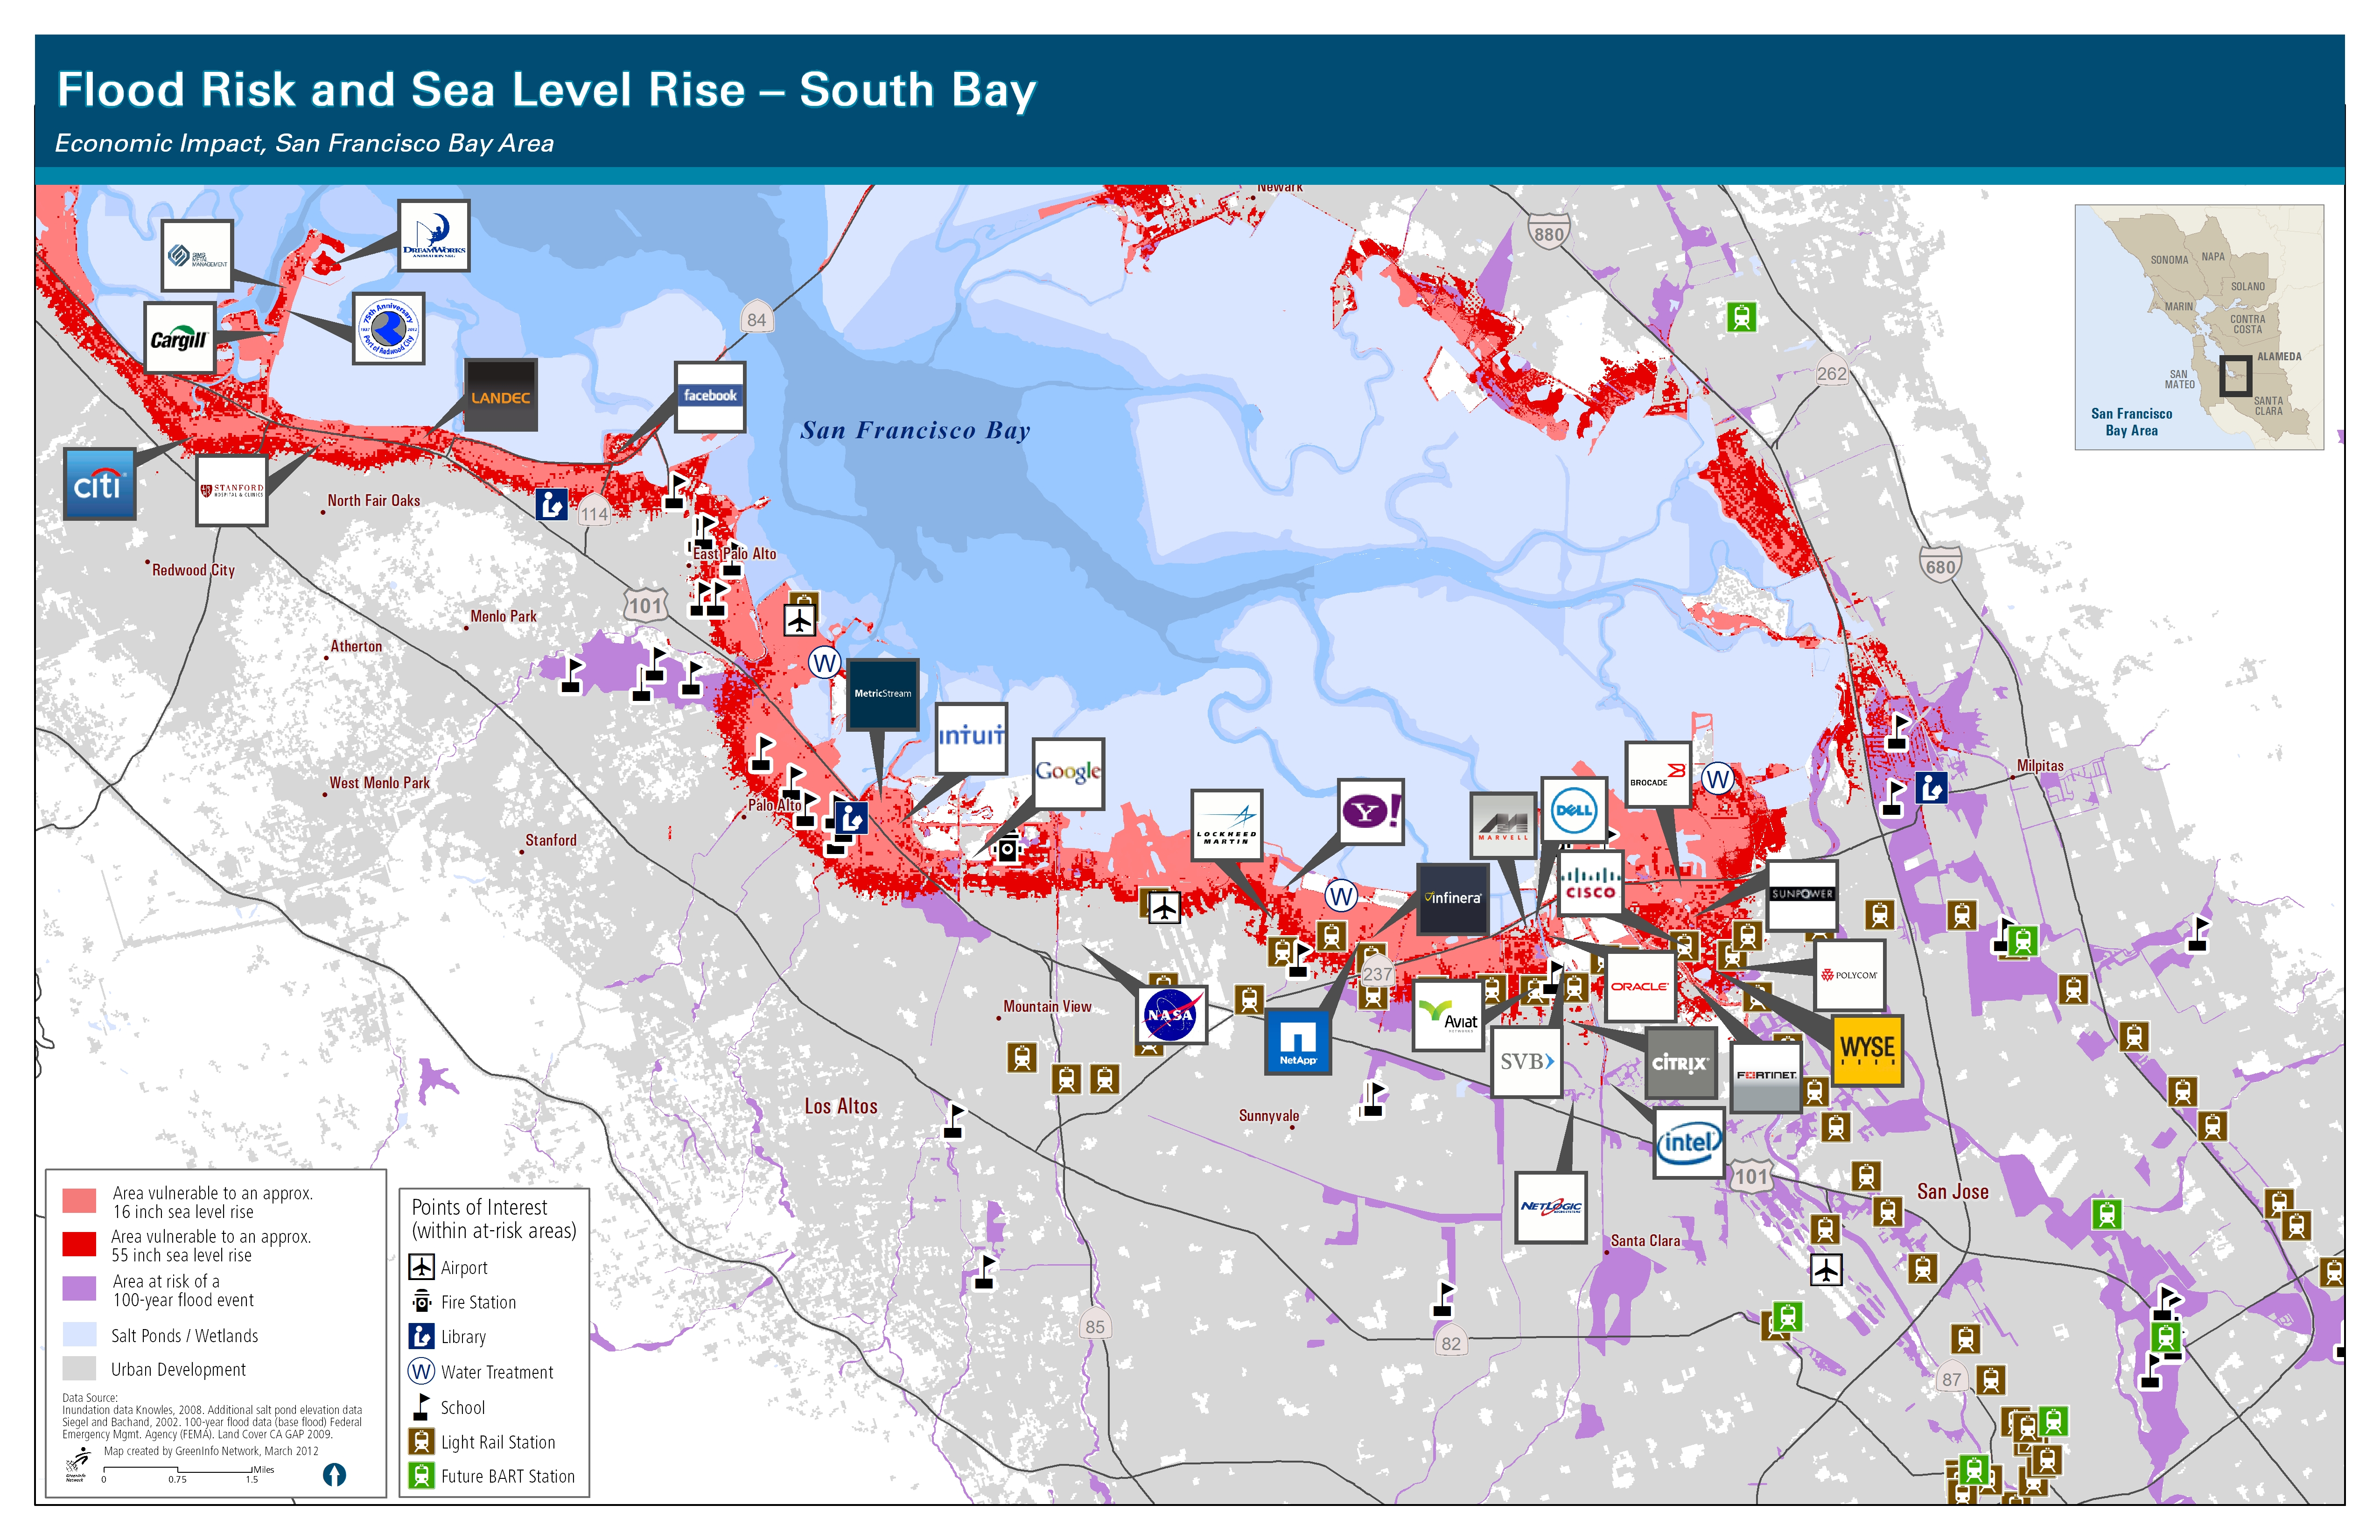 Flood Risk and Sea Level Rise